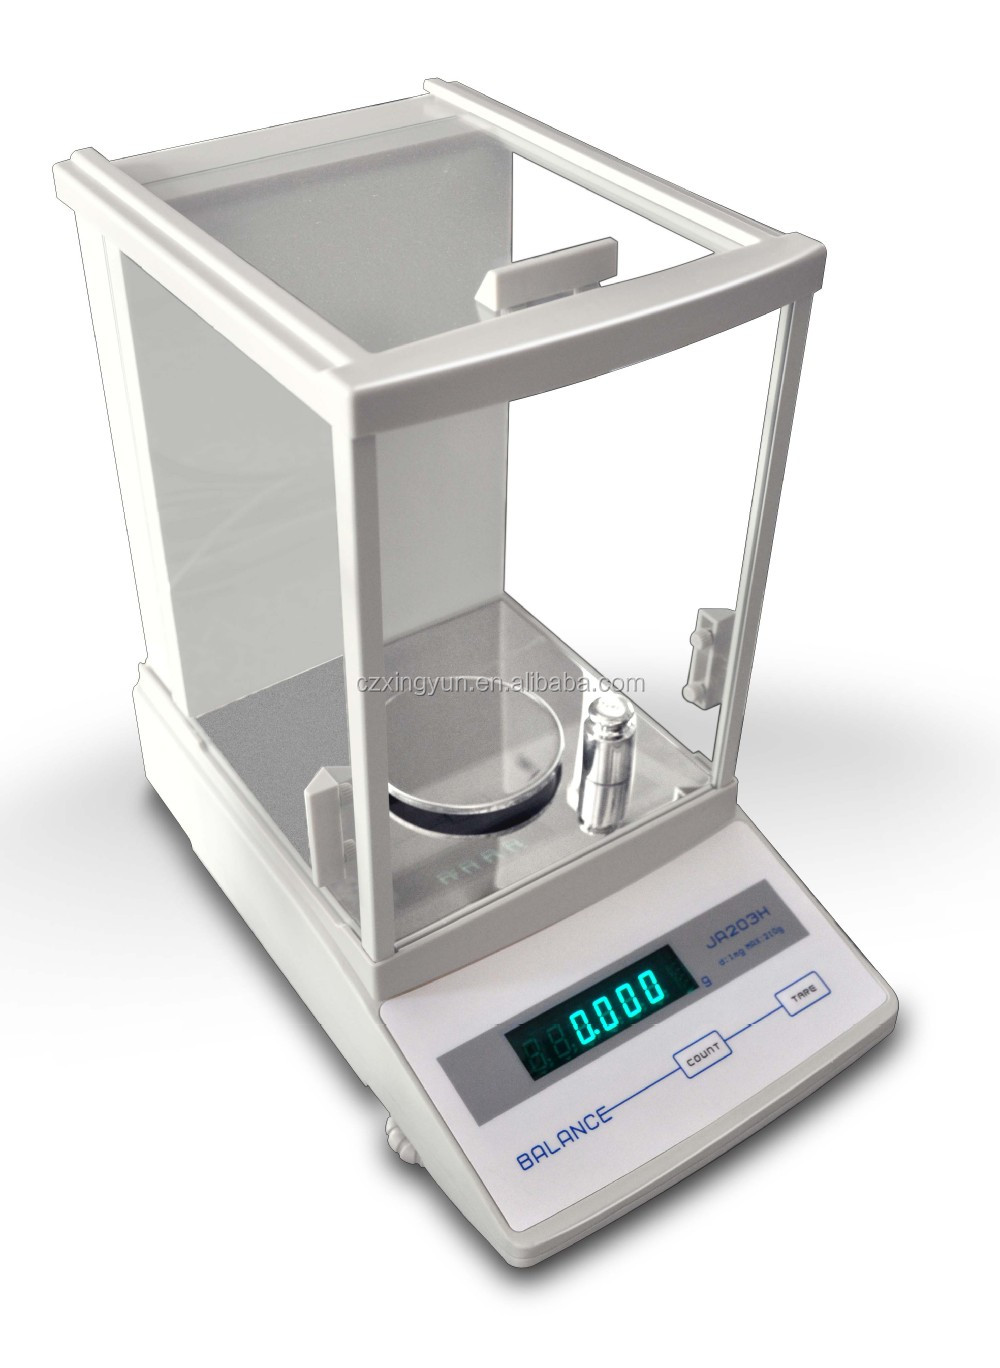 0.001g(1mg) LED display electronic machines/analytical scale/laboratory balance